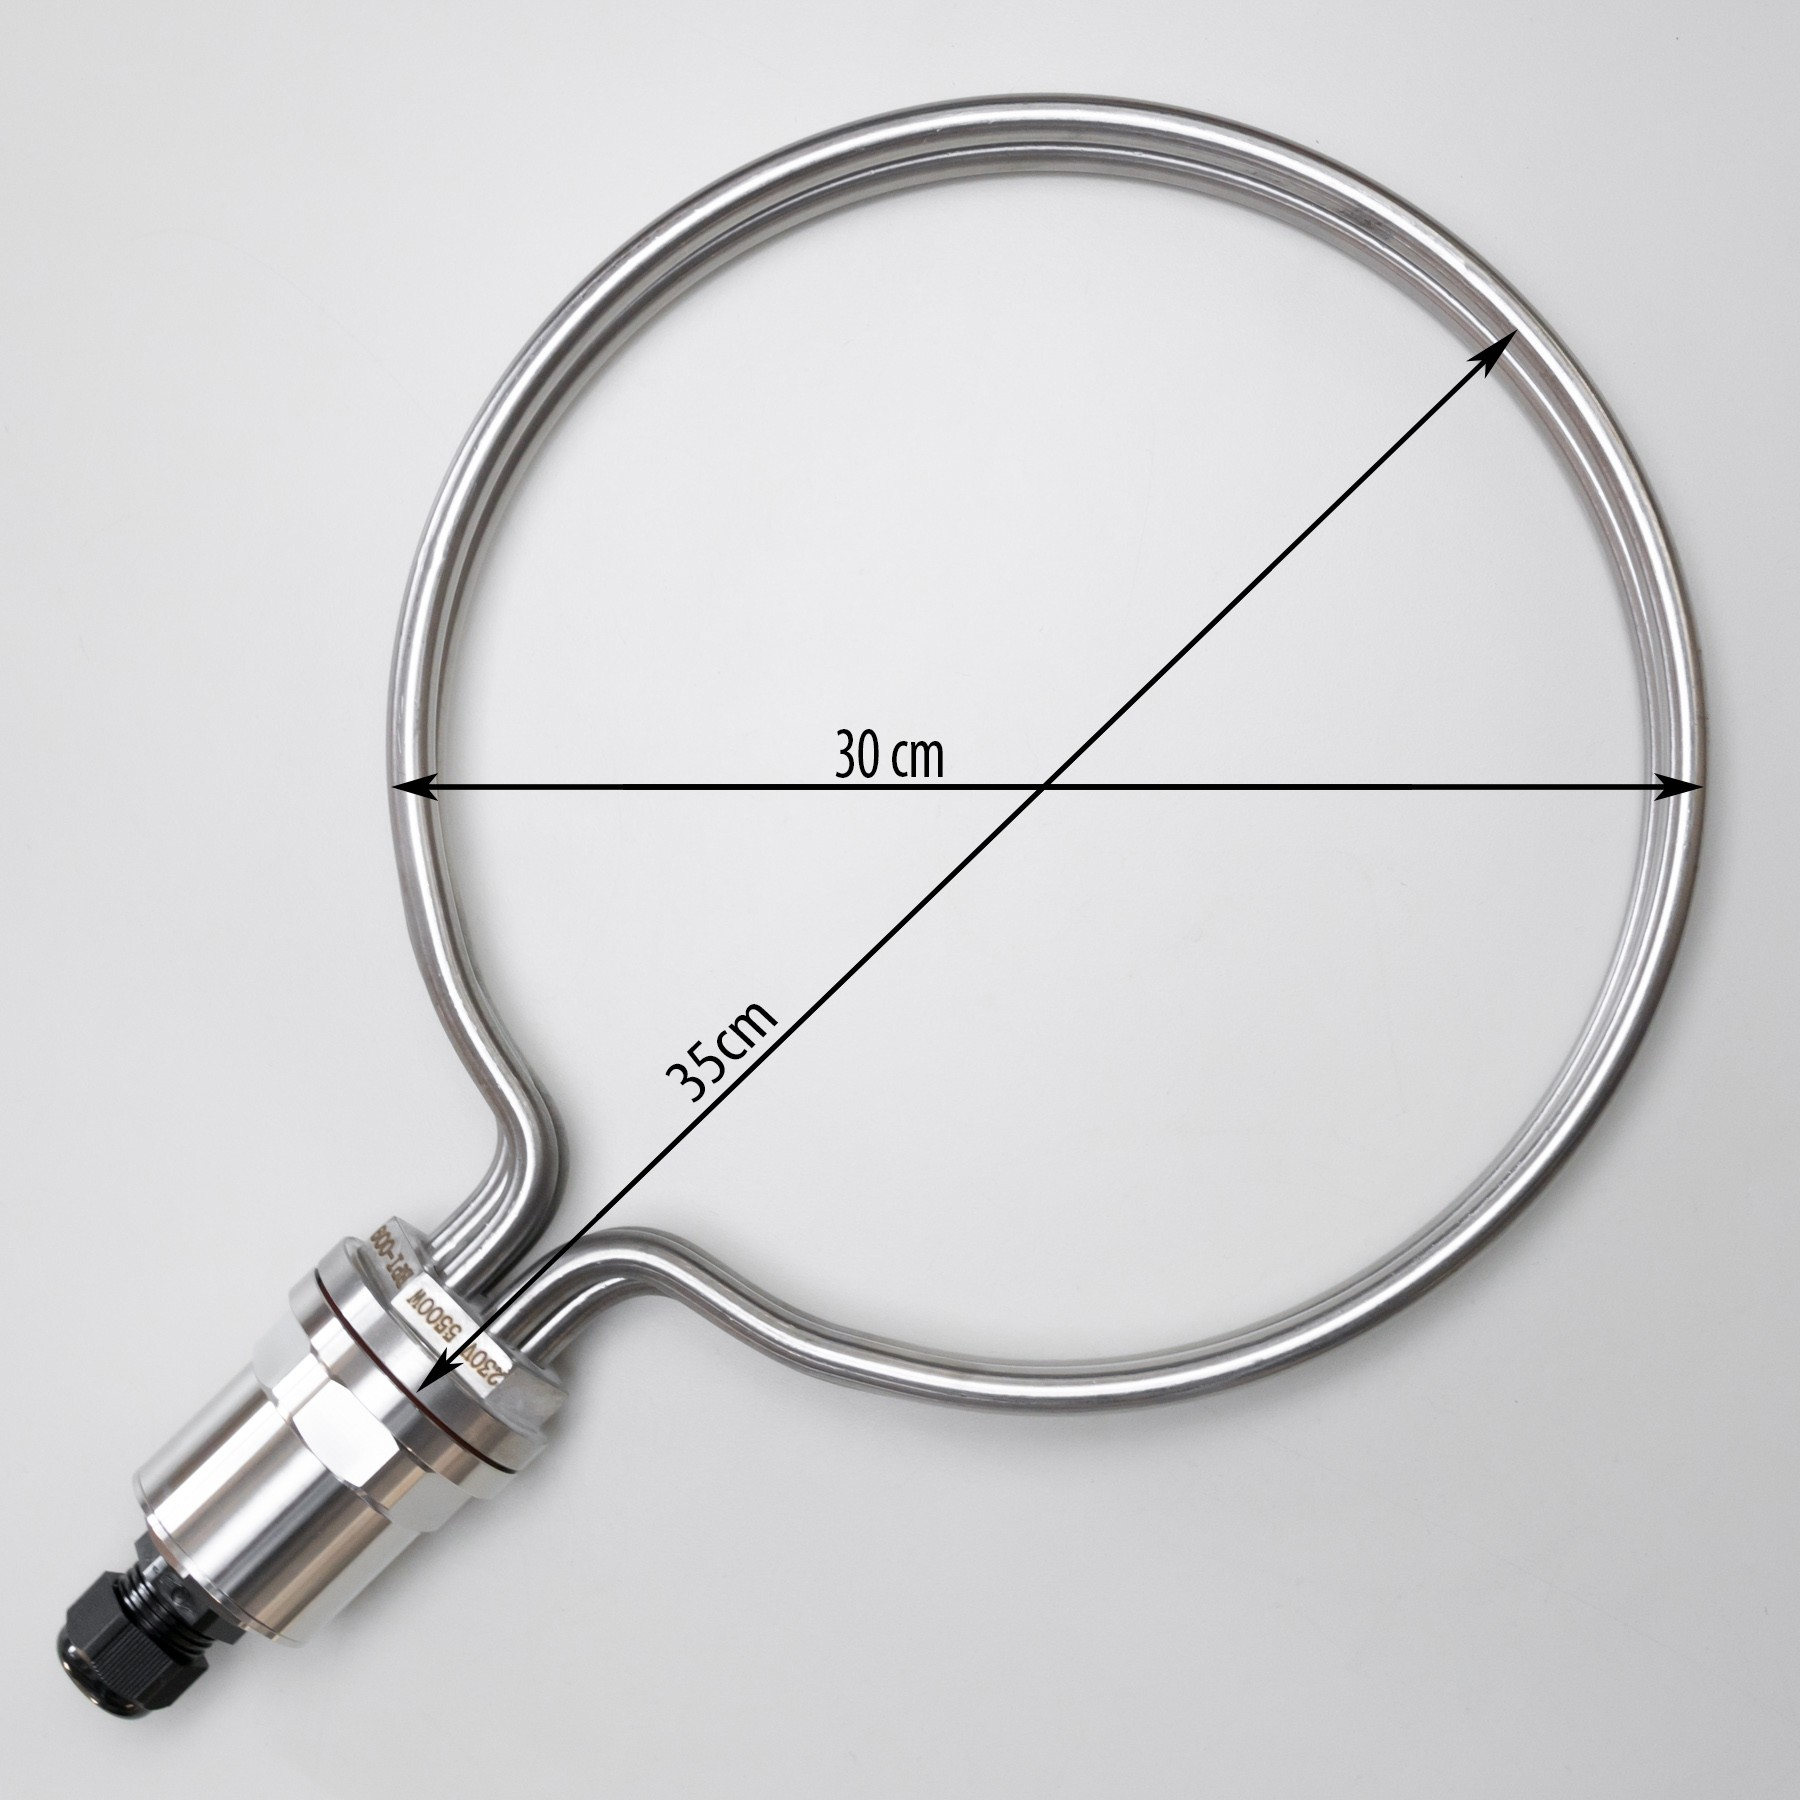 Round Heating Element for brewing, 30cm diameter, 5500W